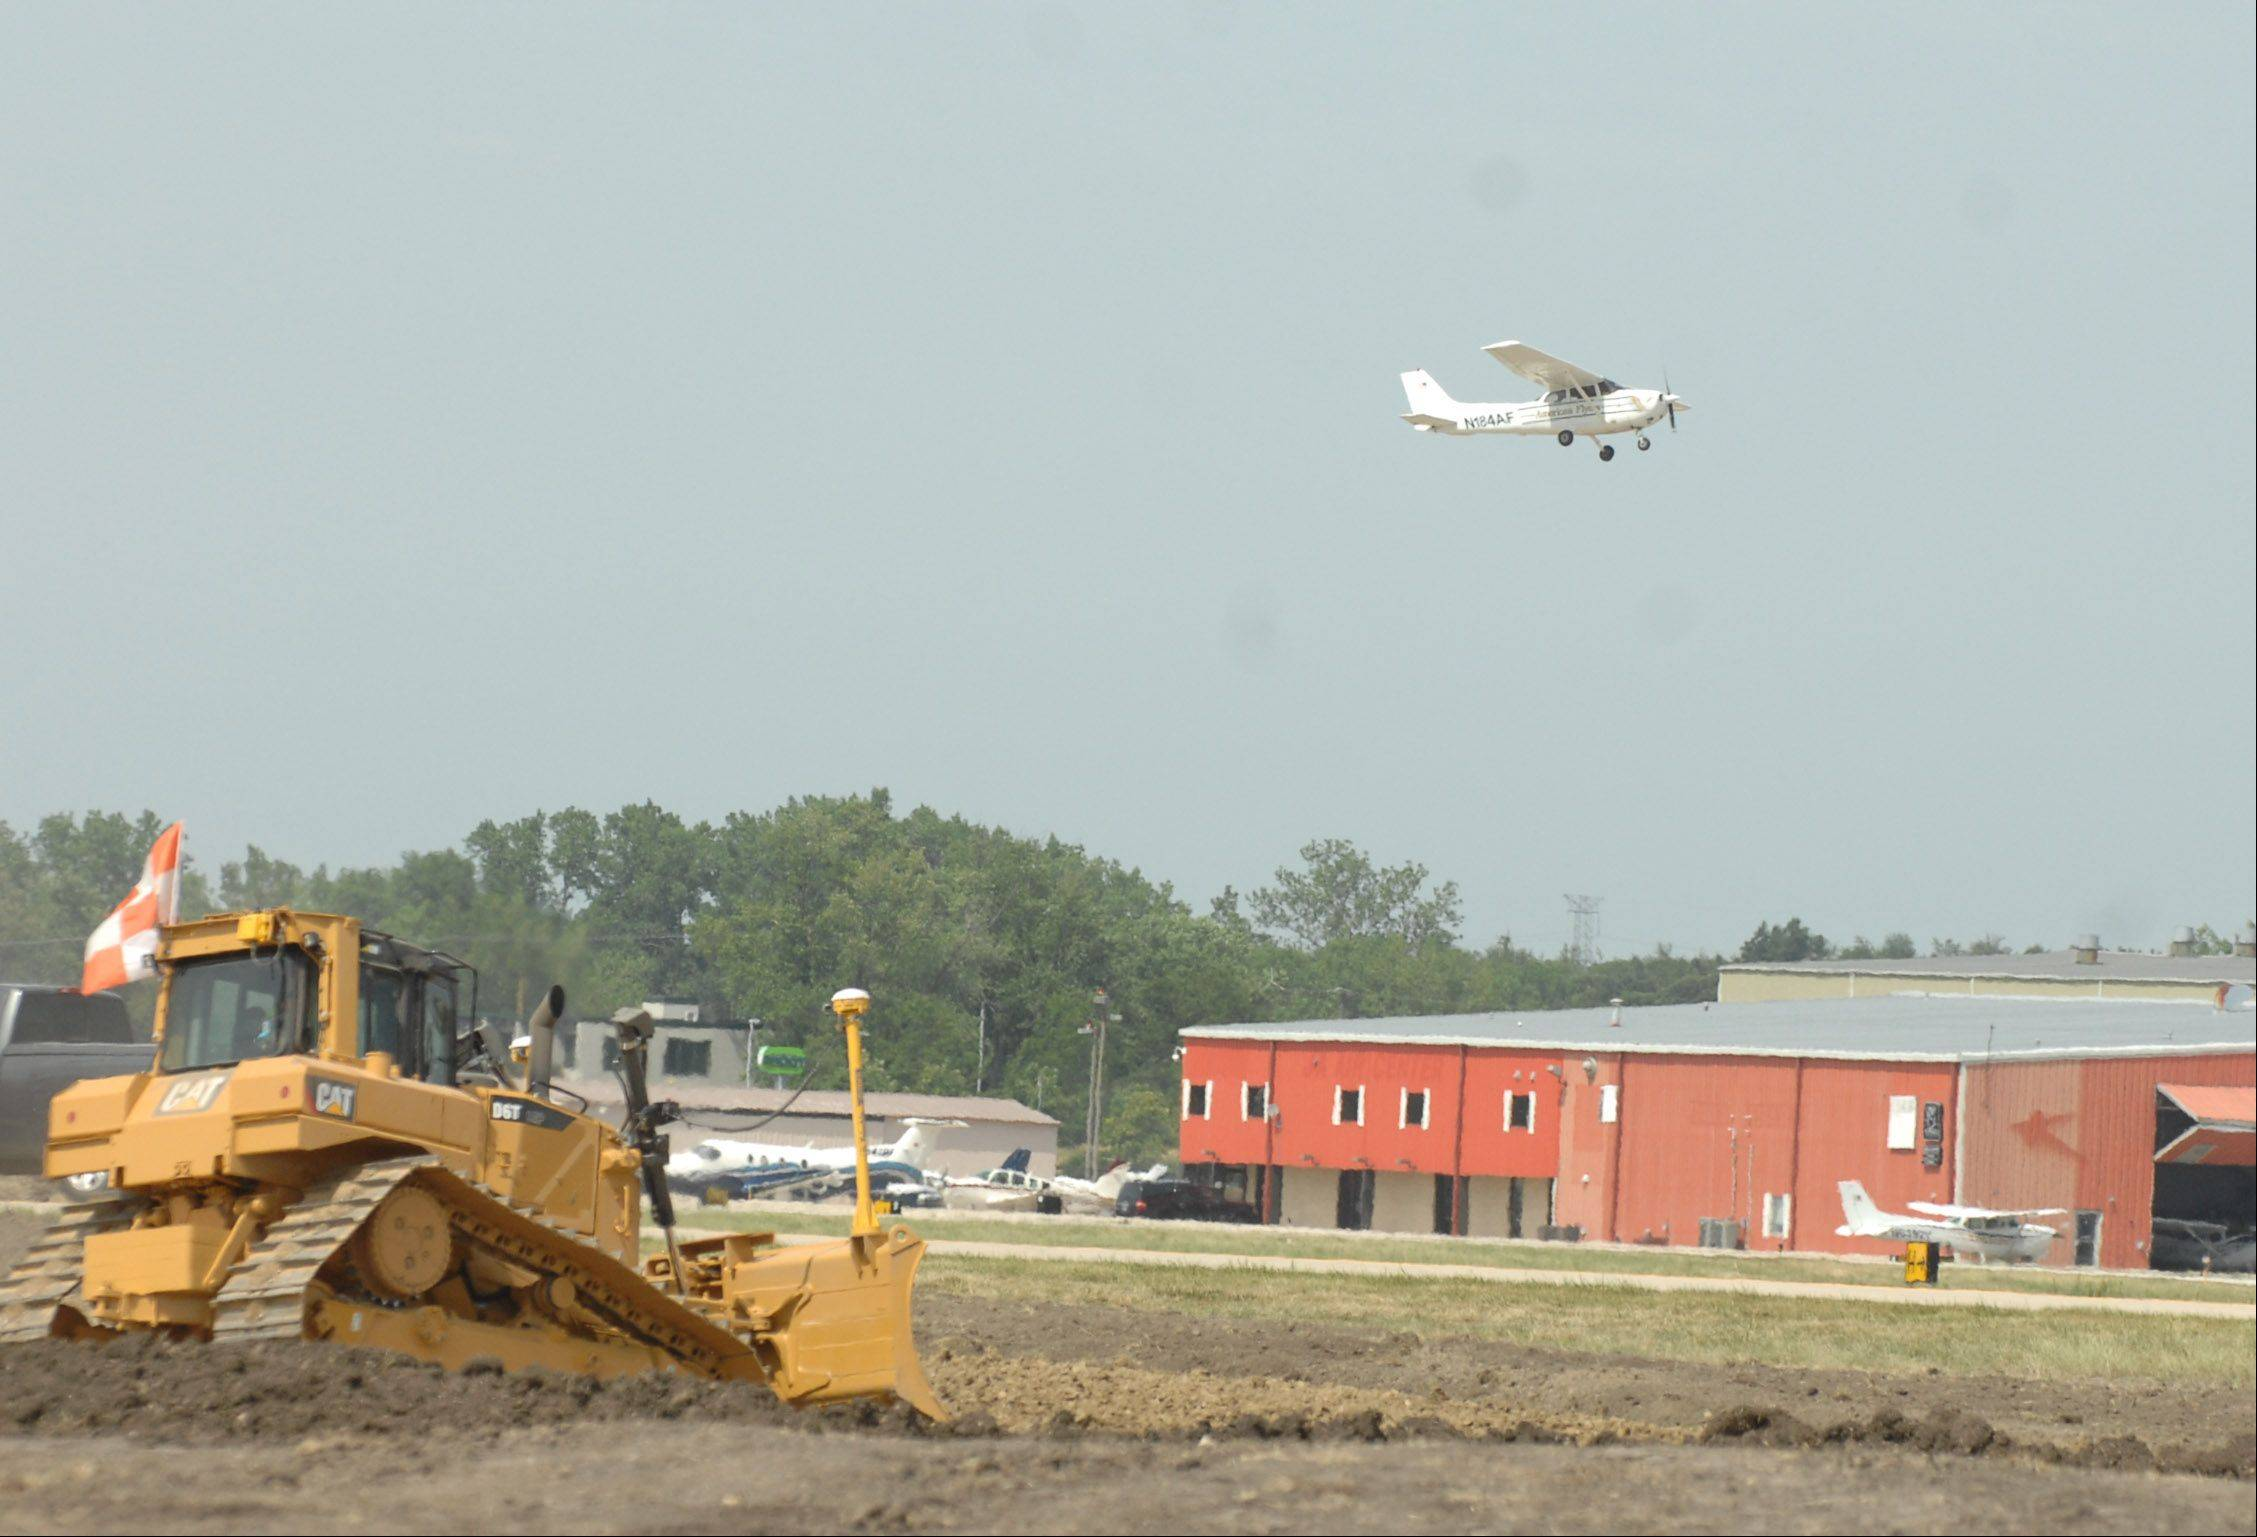 DuPage Airport officials hope the $3.5 million extension of the secondary runway will be complete by fall.